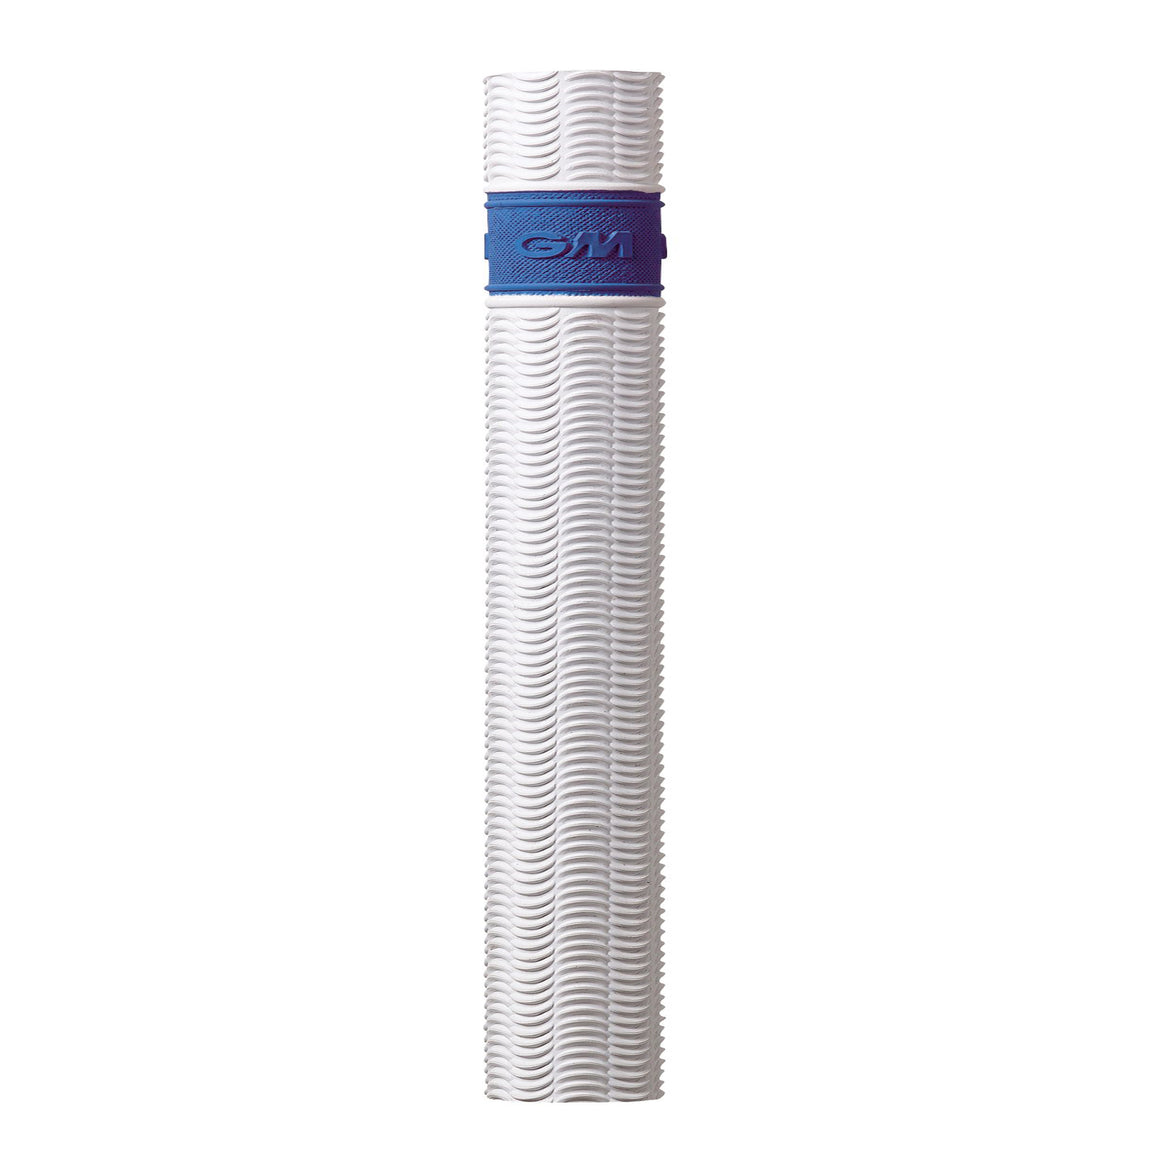 Ripple Grip for Cricket Bats in White & Blue